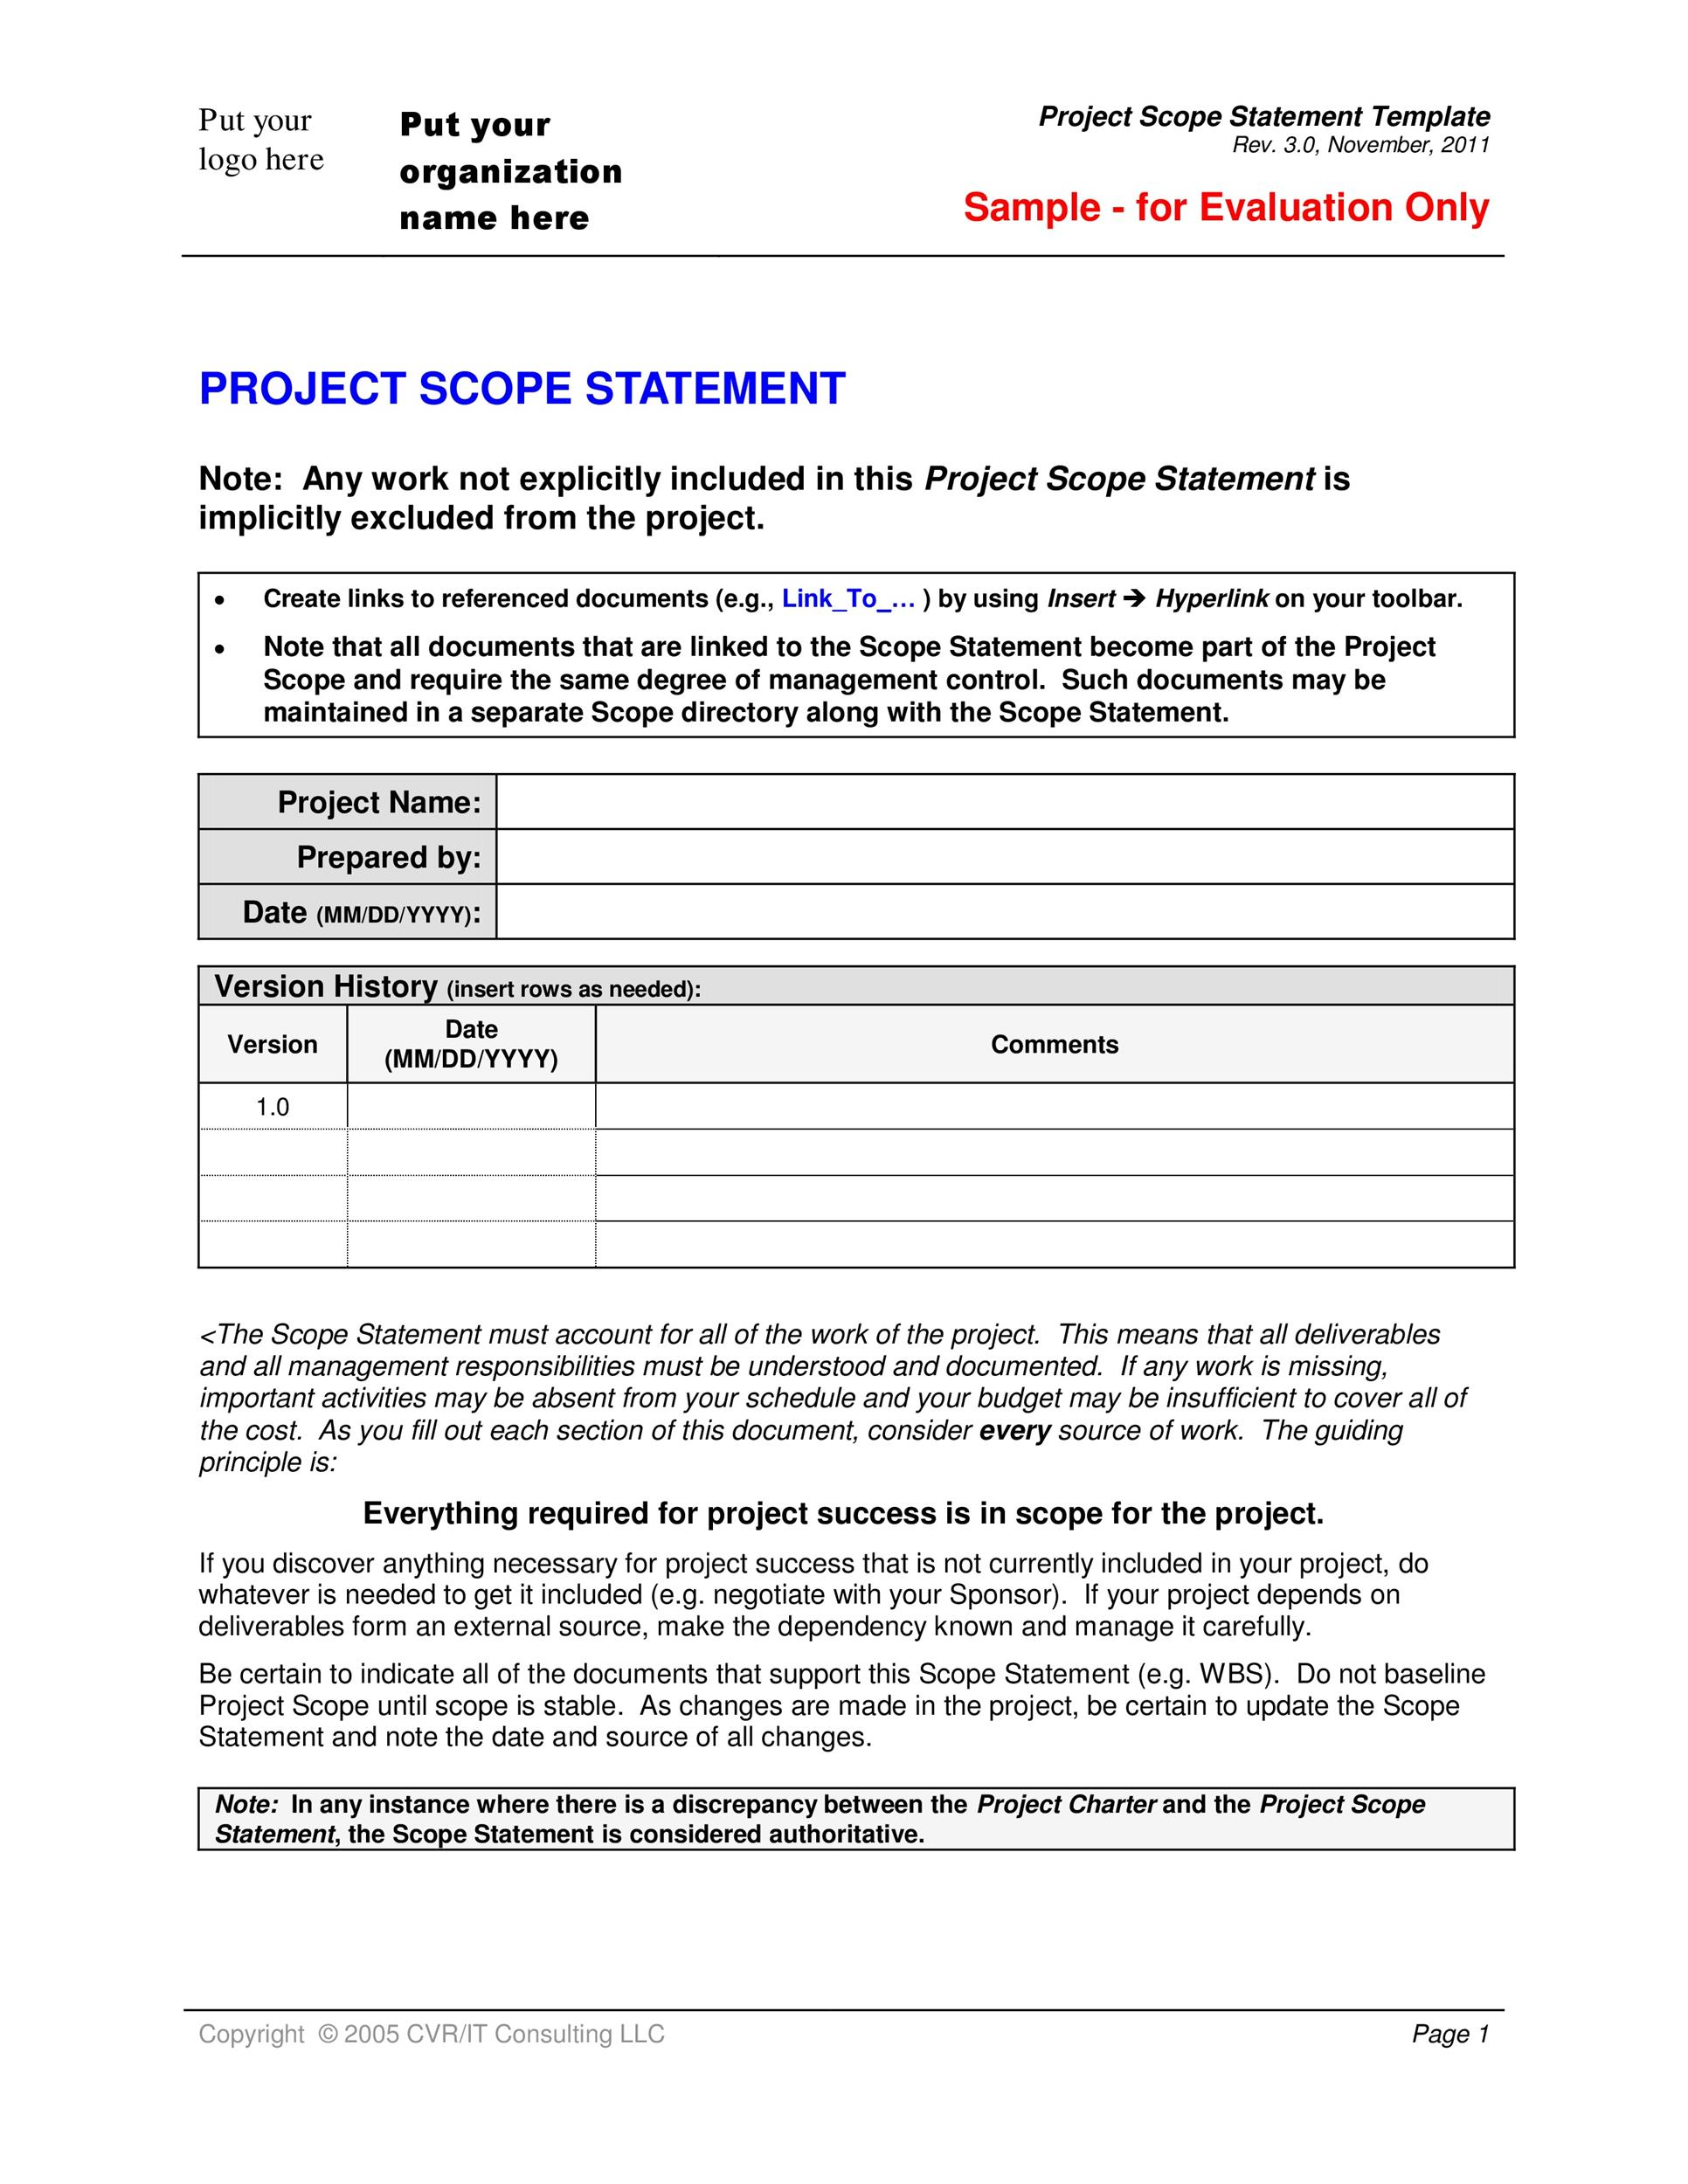 43 Project Scope Statement Templates & Examples - Template Lab